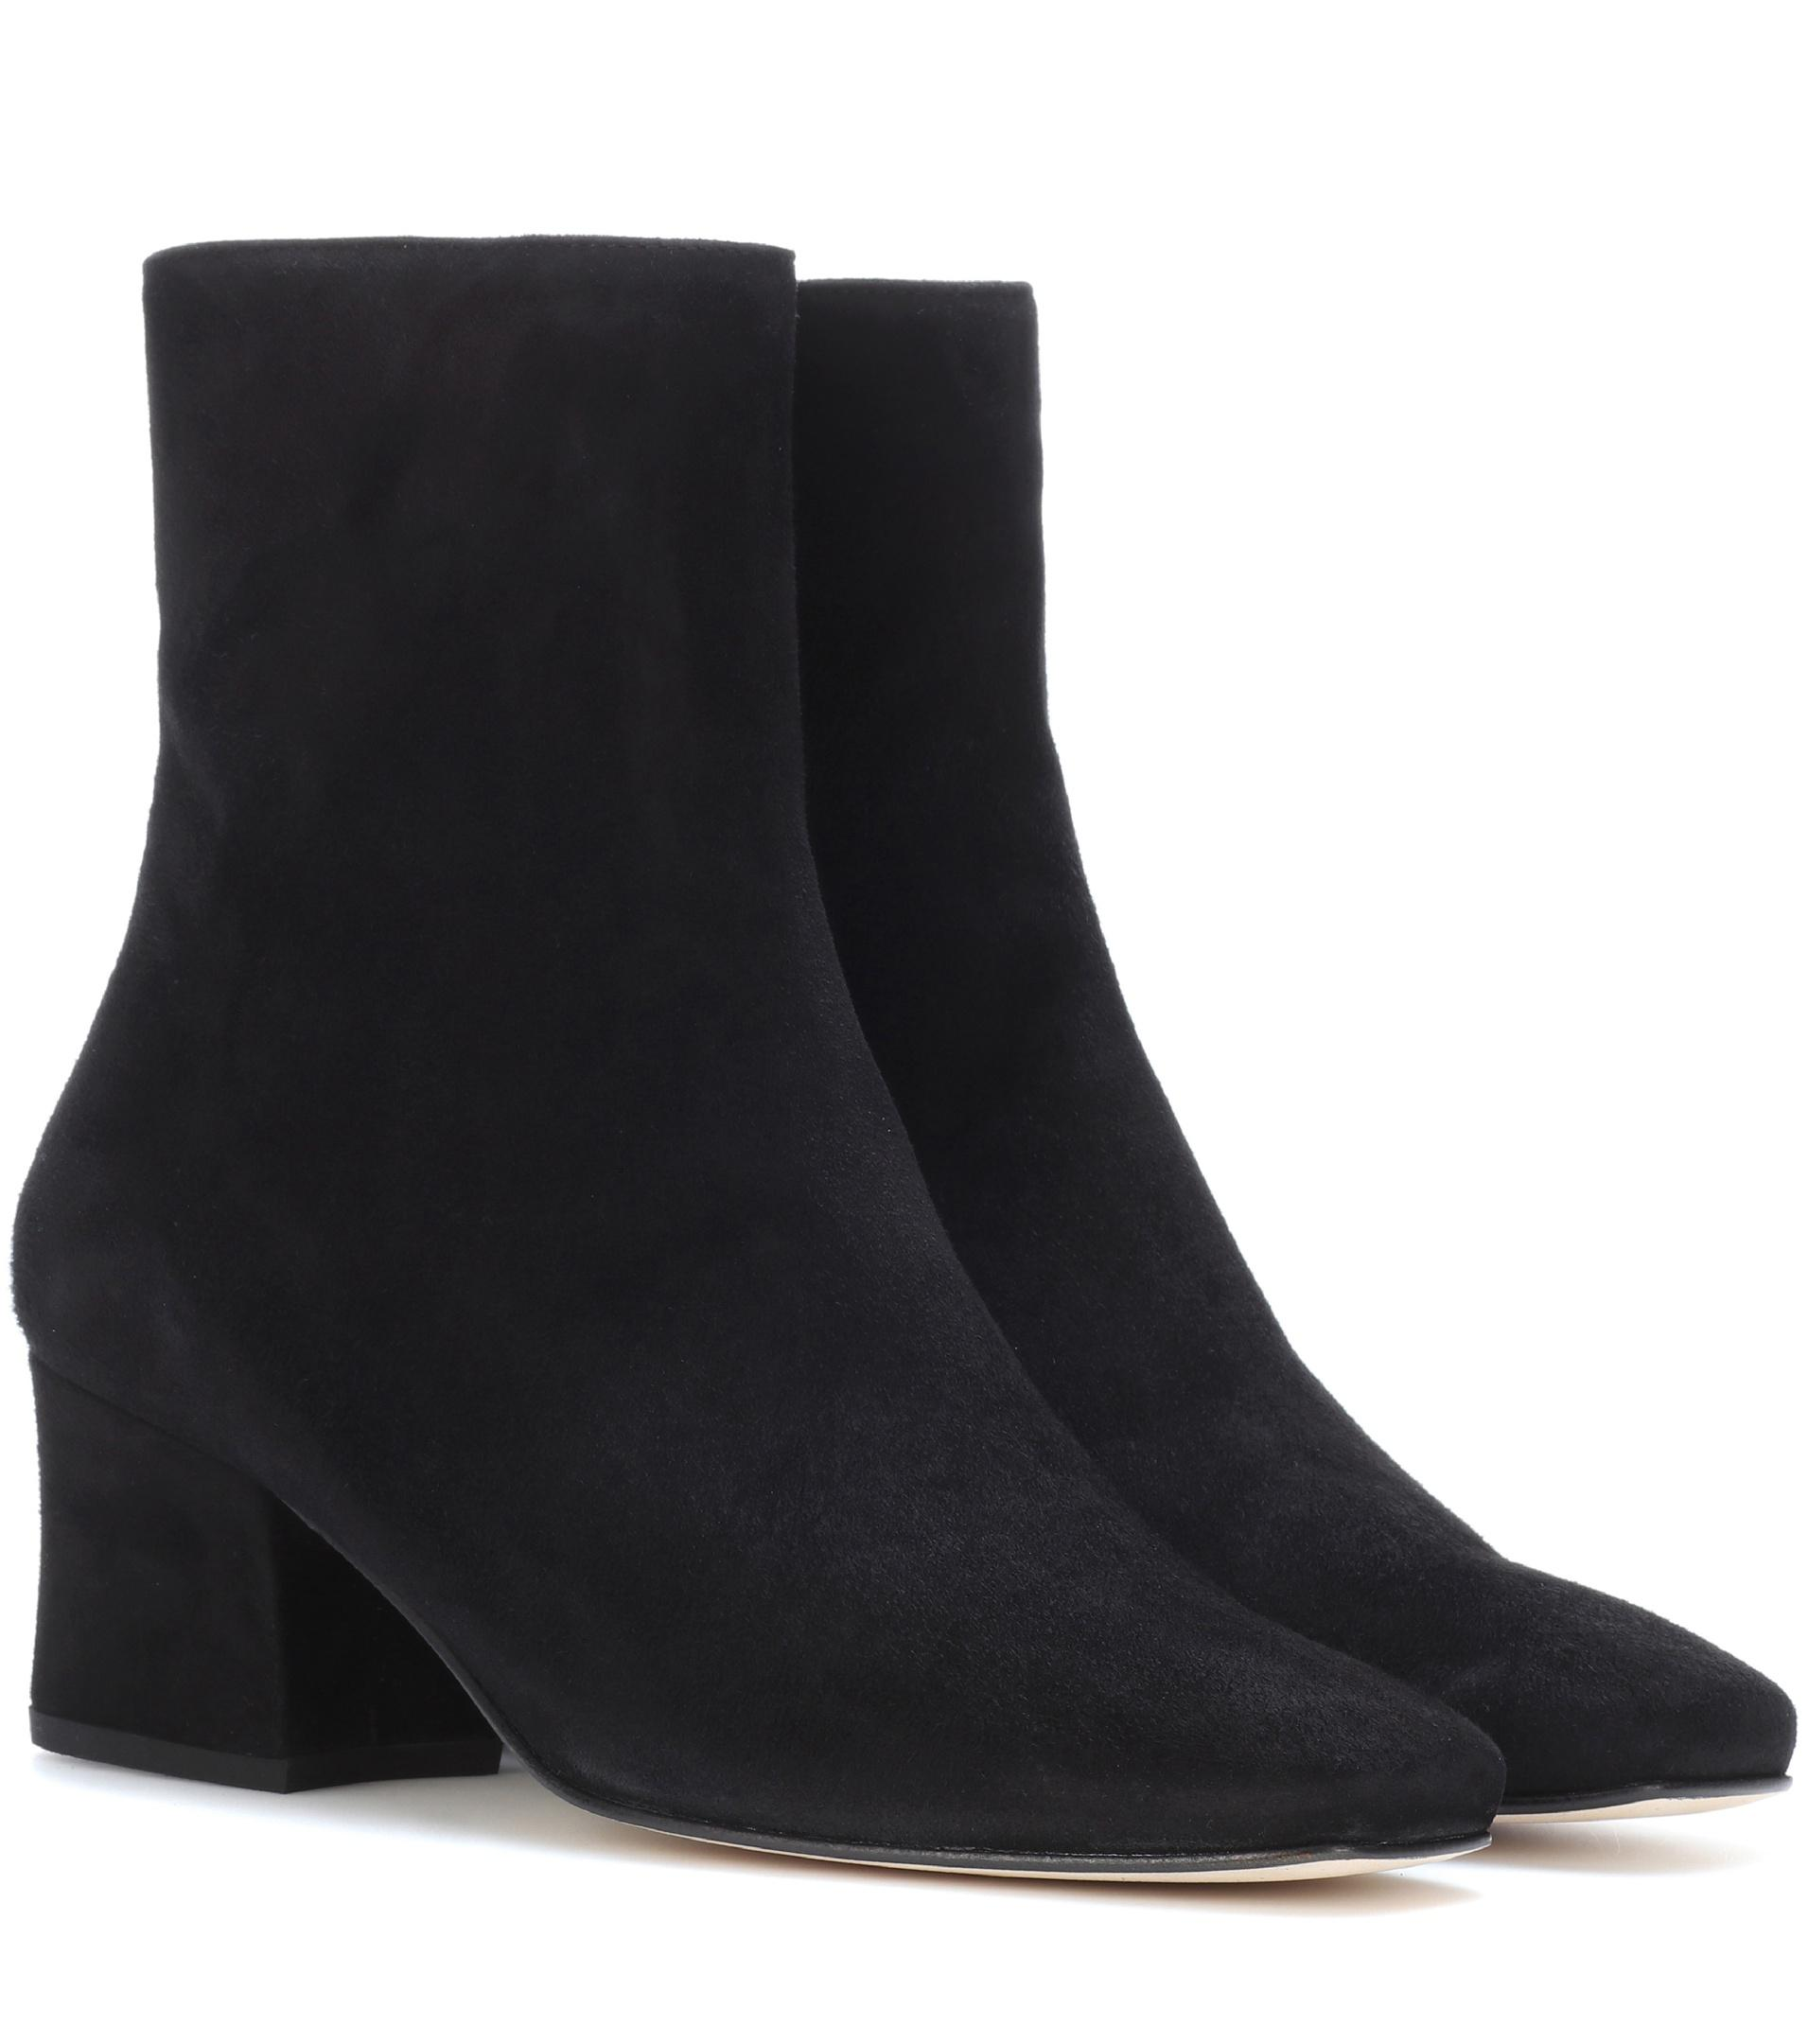 Discount In China Clearance New Arrival DORATEYMUR Sybil Leek suede ankle boots Big Sale Online f9HQEKn